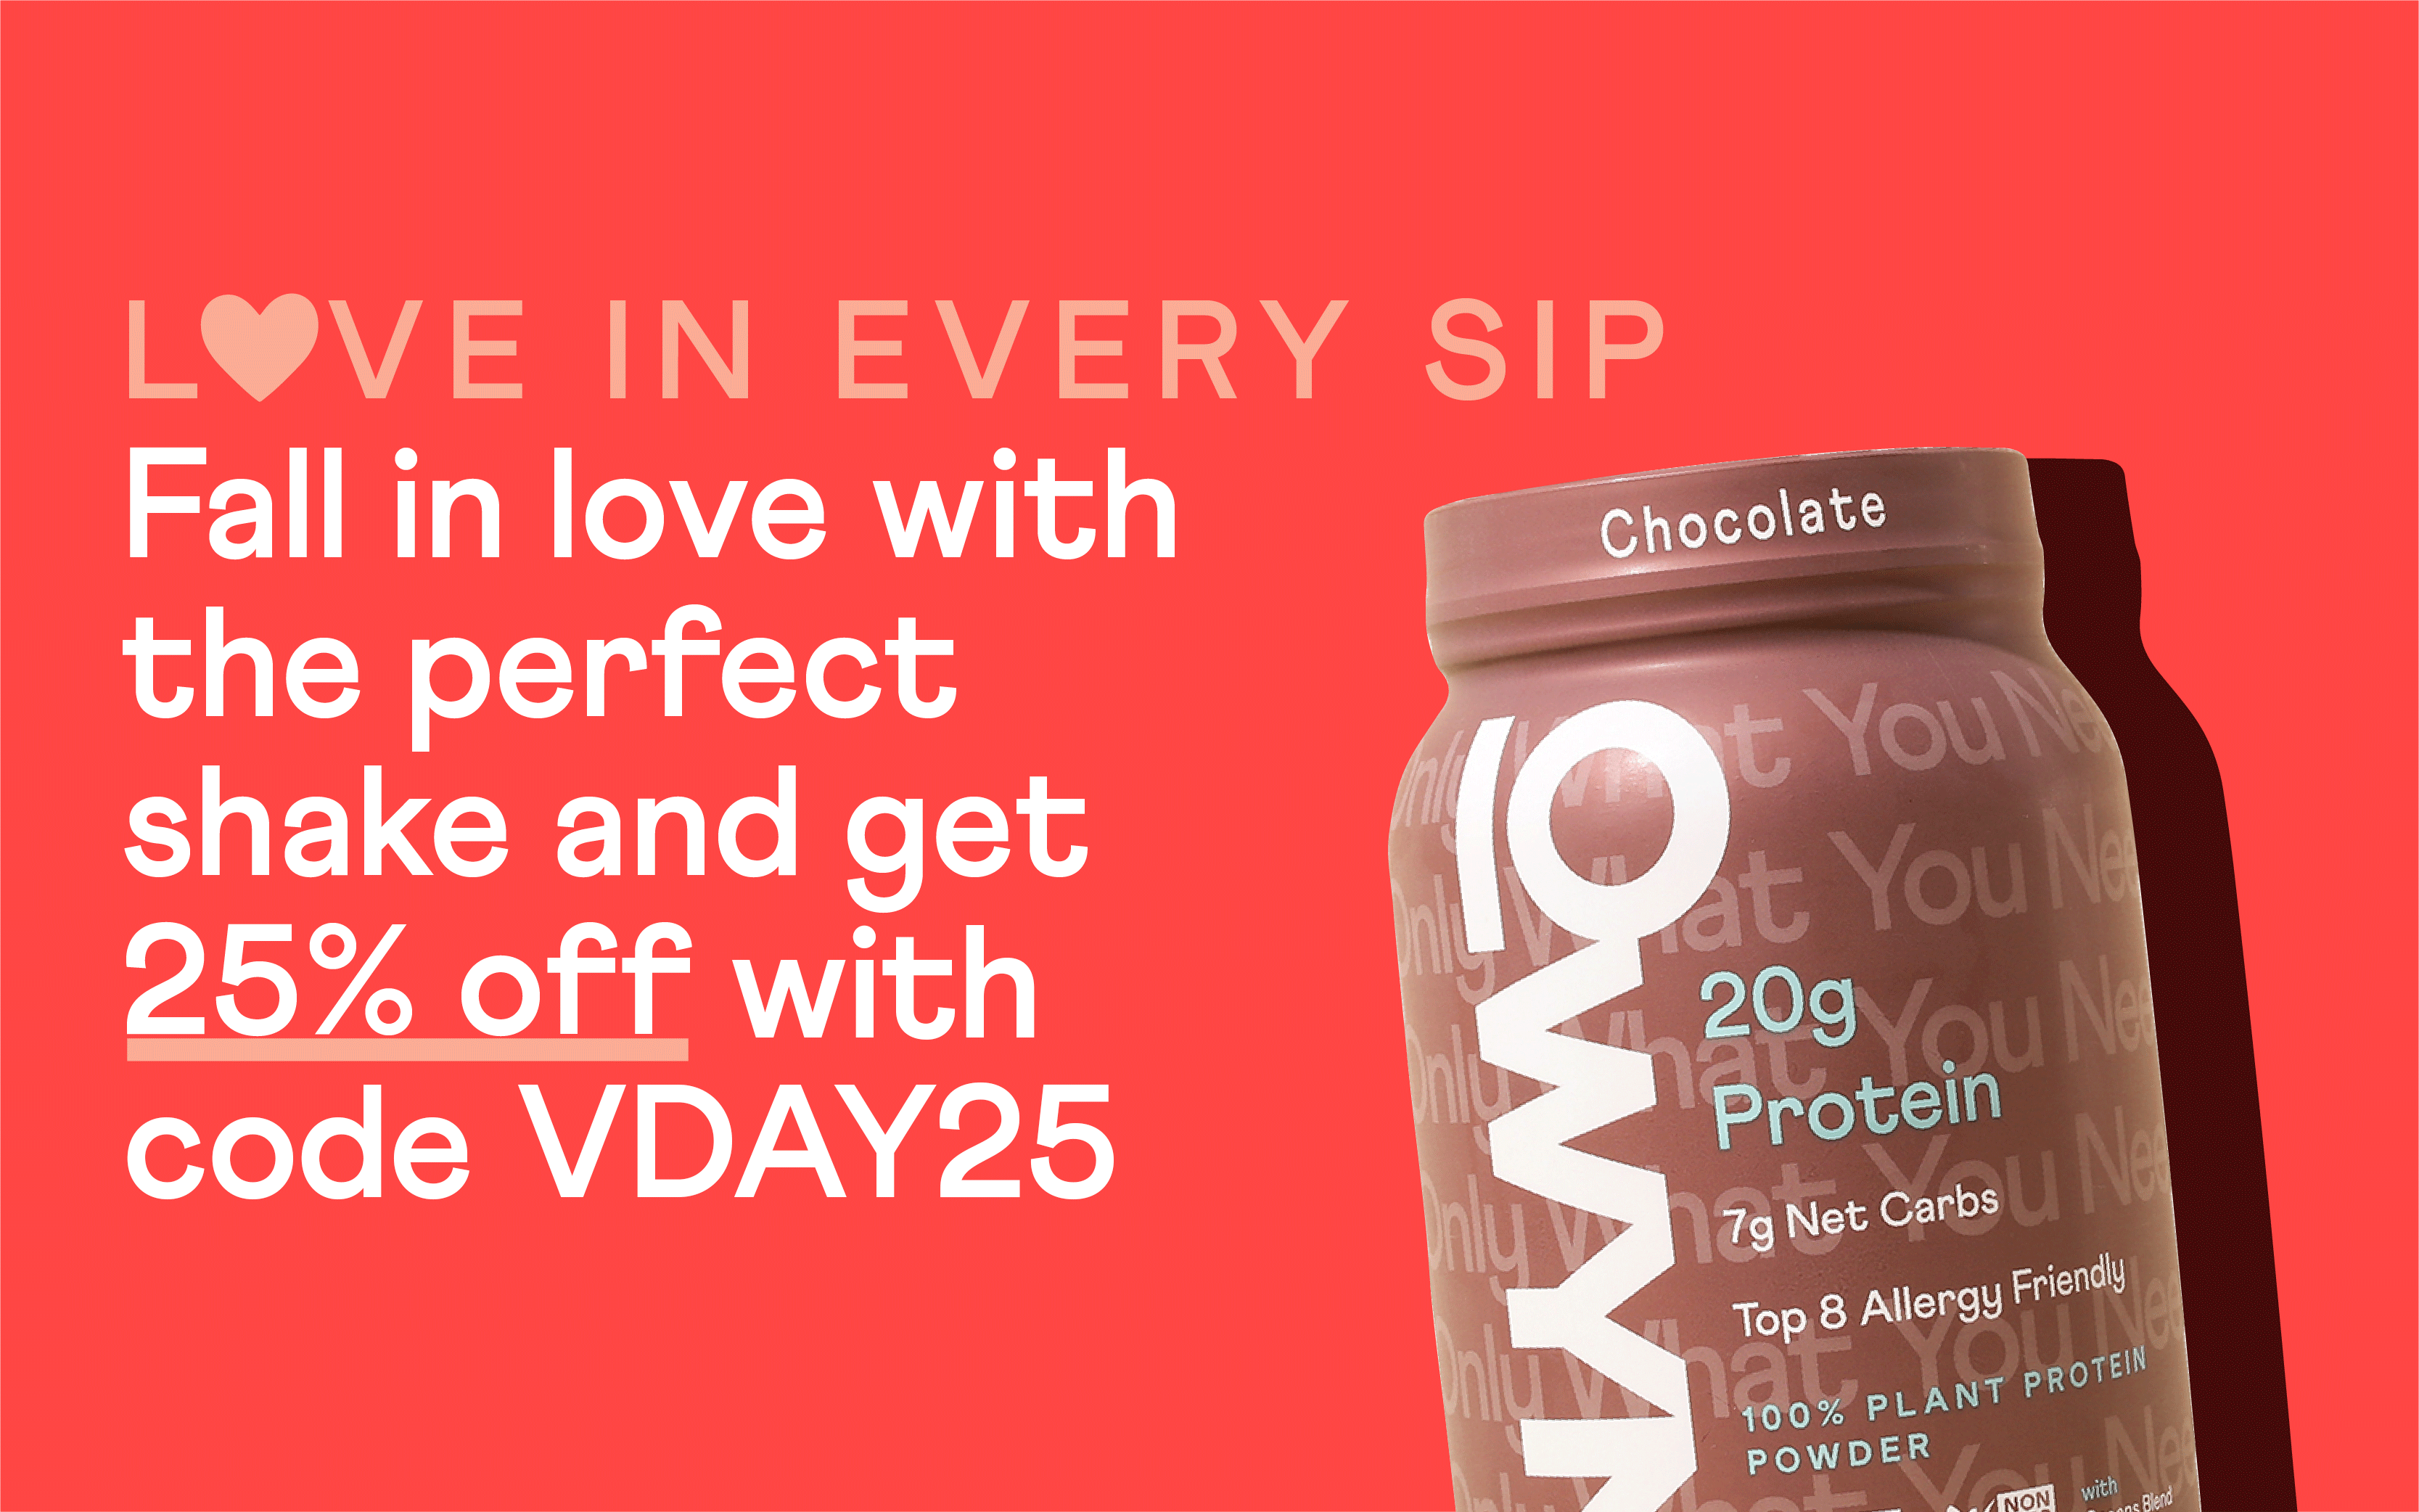 Love in every sip. 25% off